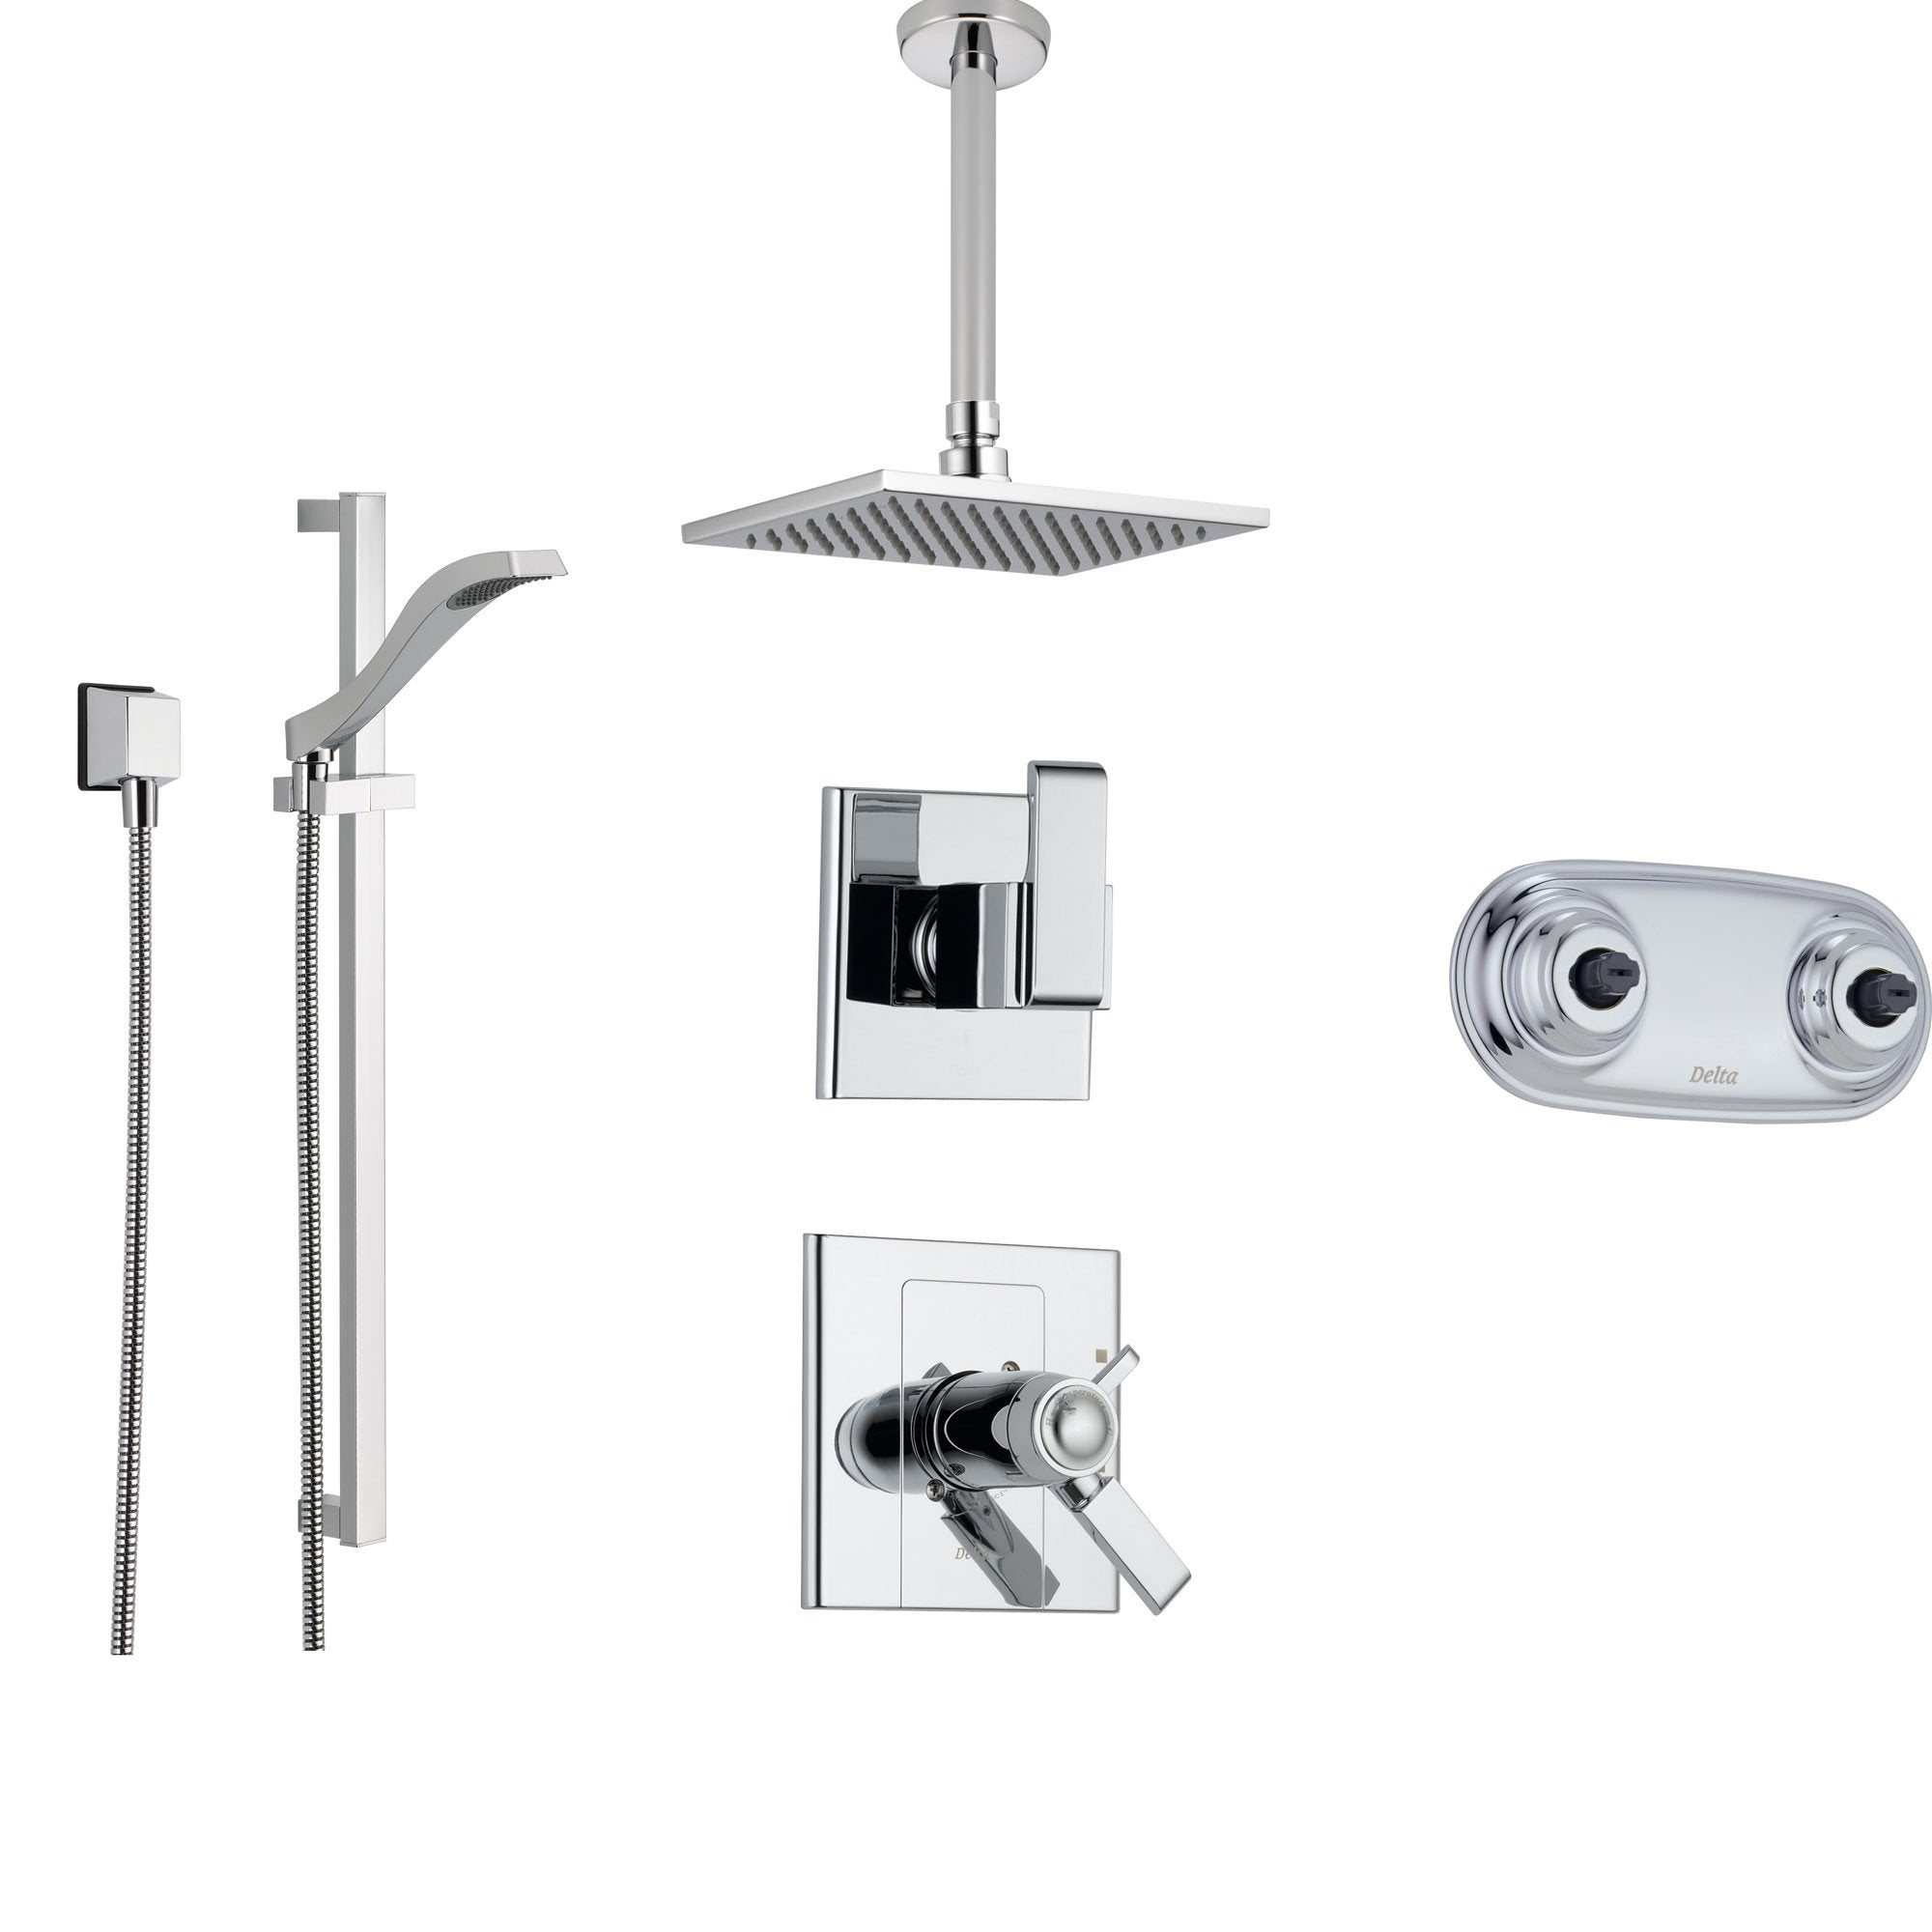 Delta Arzo Chrome Shower System with Thermostatic Shower Handle, 6-setting Diverter, Modern Ceiling Mount Showerhead, Hand Shower, and Dual Body Spray Plate SS17T8695